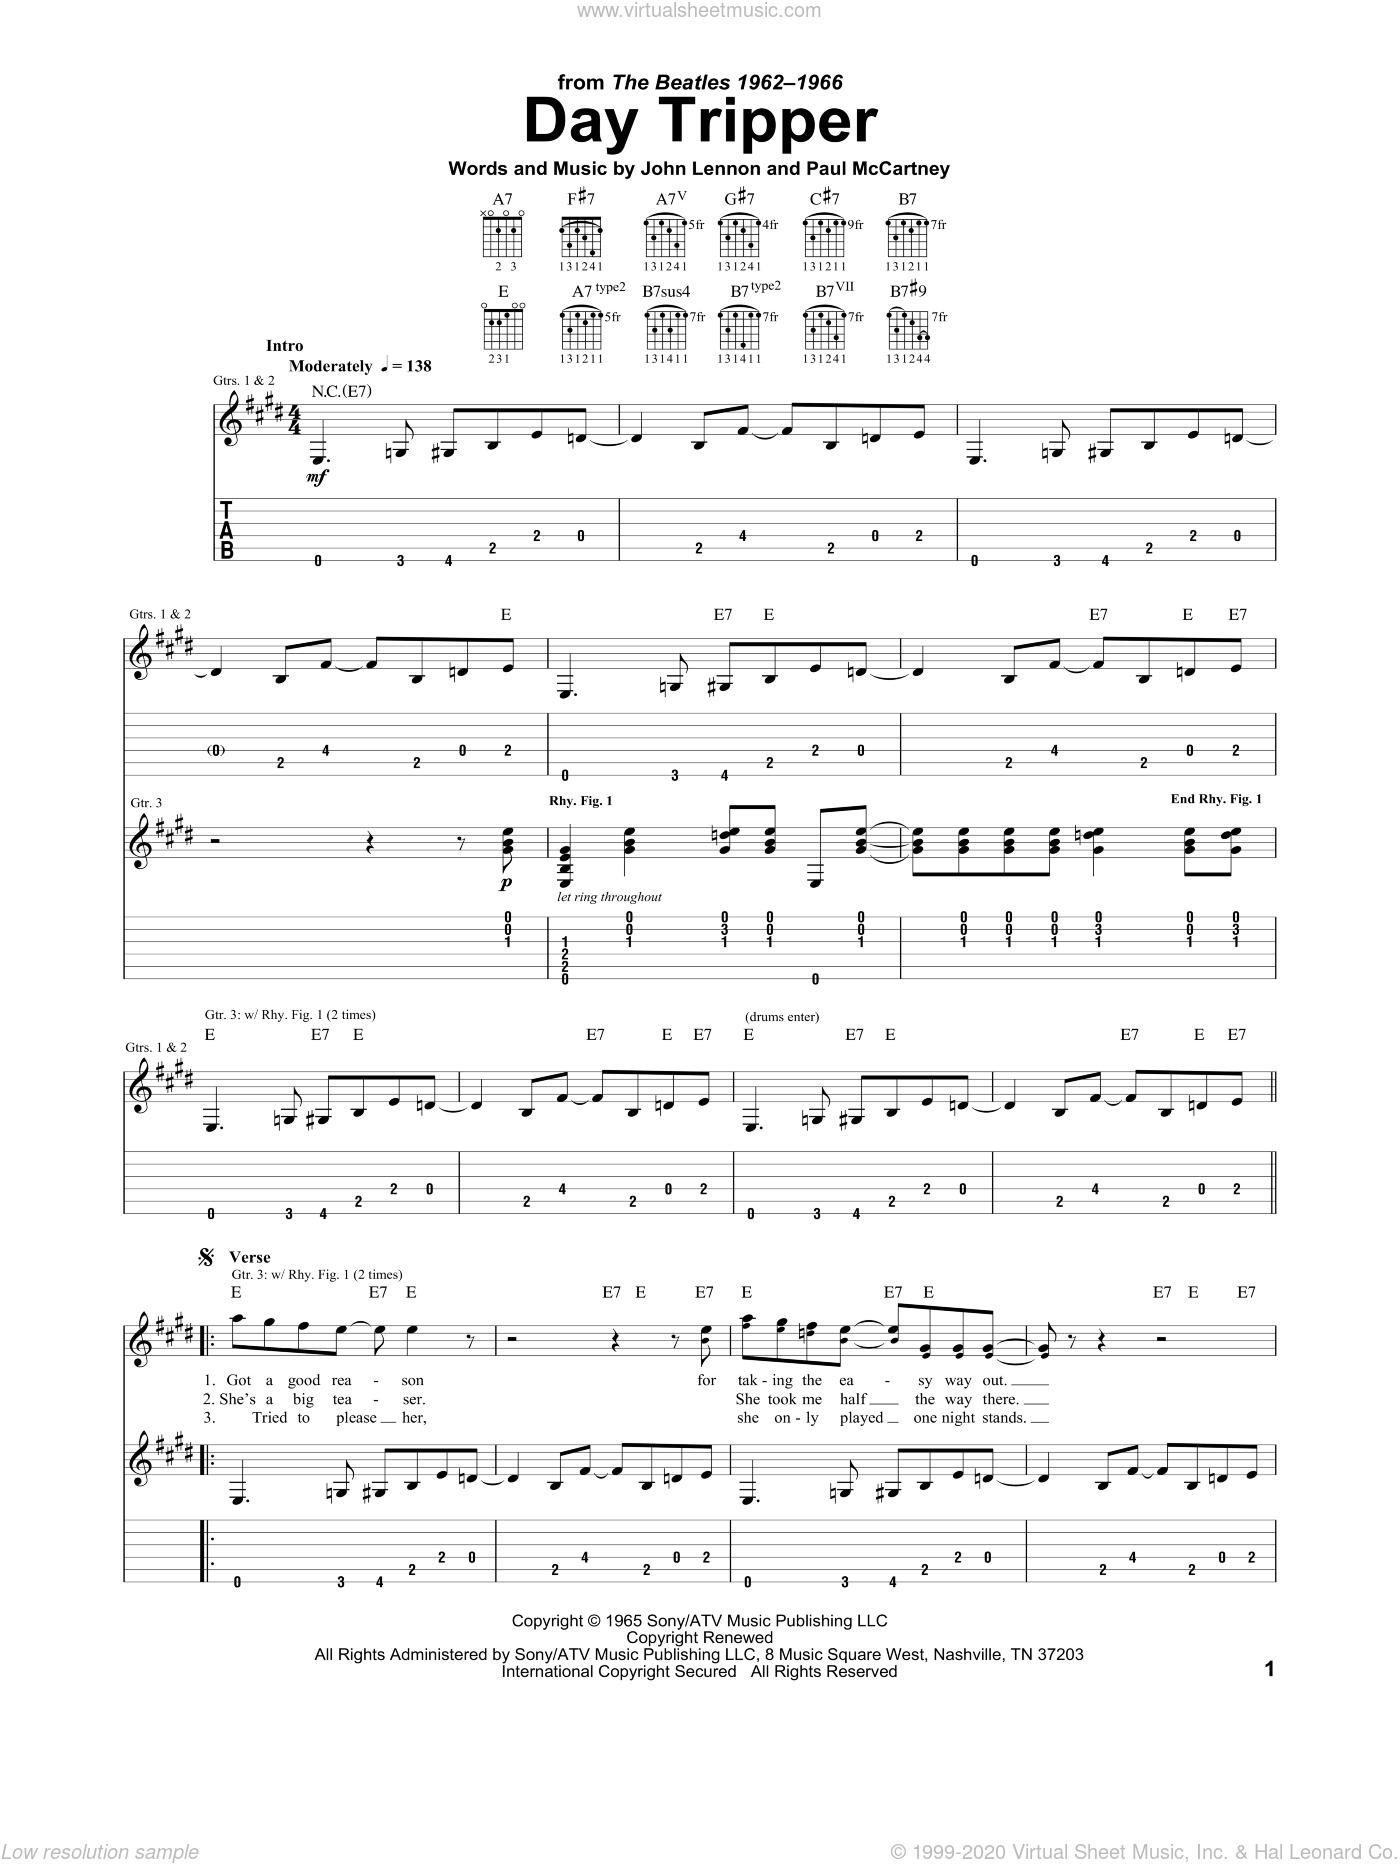 Day Tripper sheet music for guitar (tablature) by The Beatles, John Lennon and Paul McCartney, intermediate guitar (tablature). Score Image Preview.